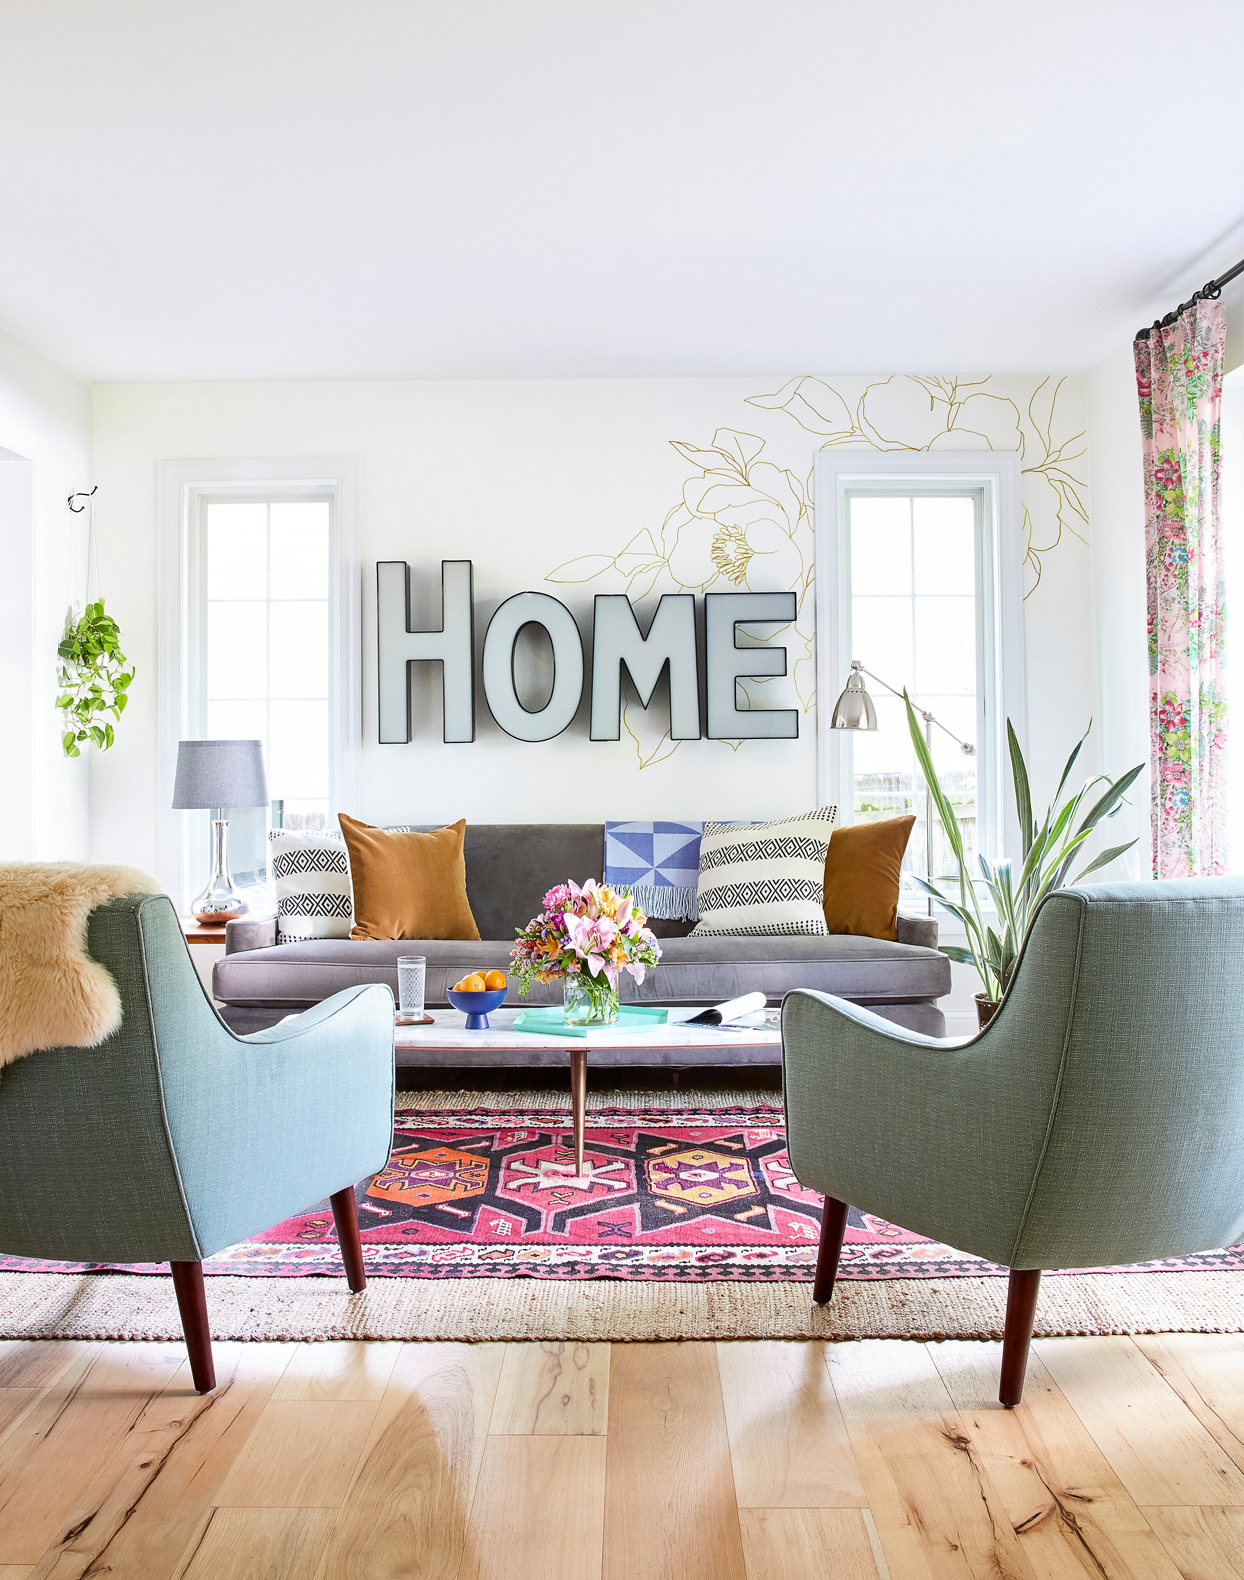 living room with salvaged marquee letters